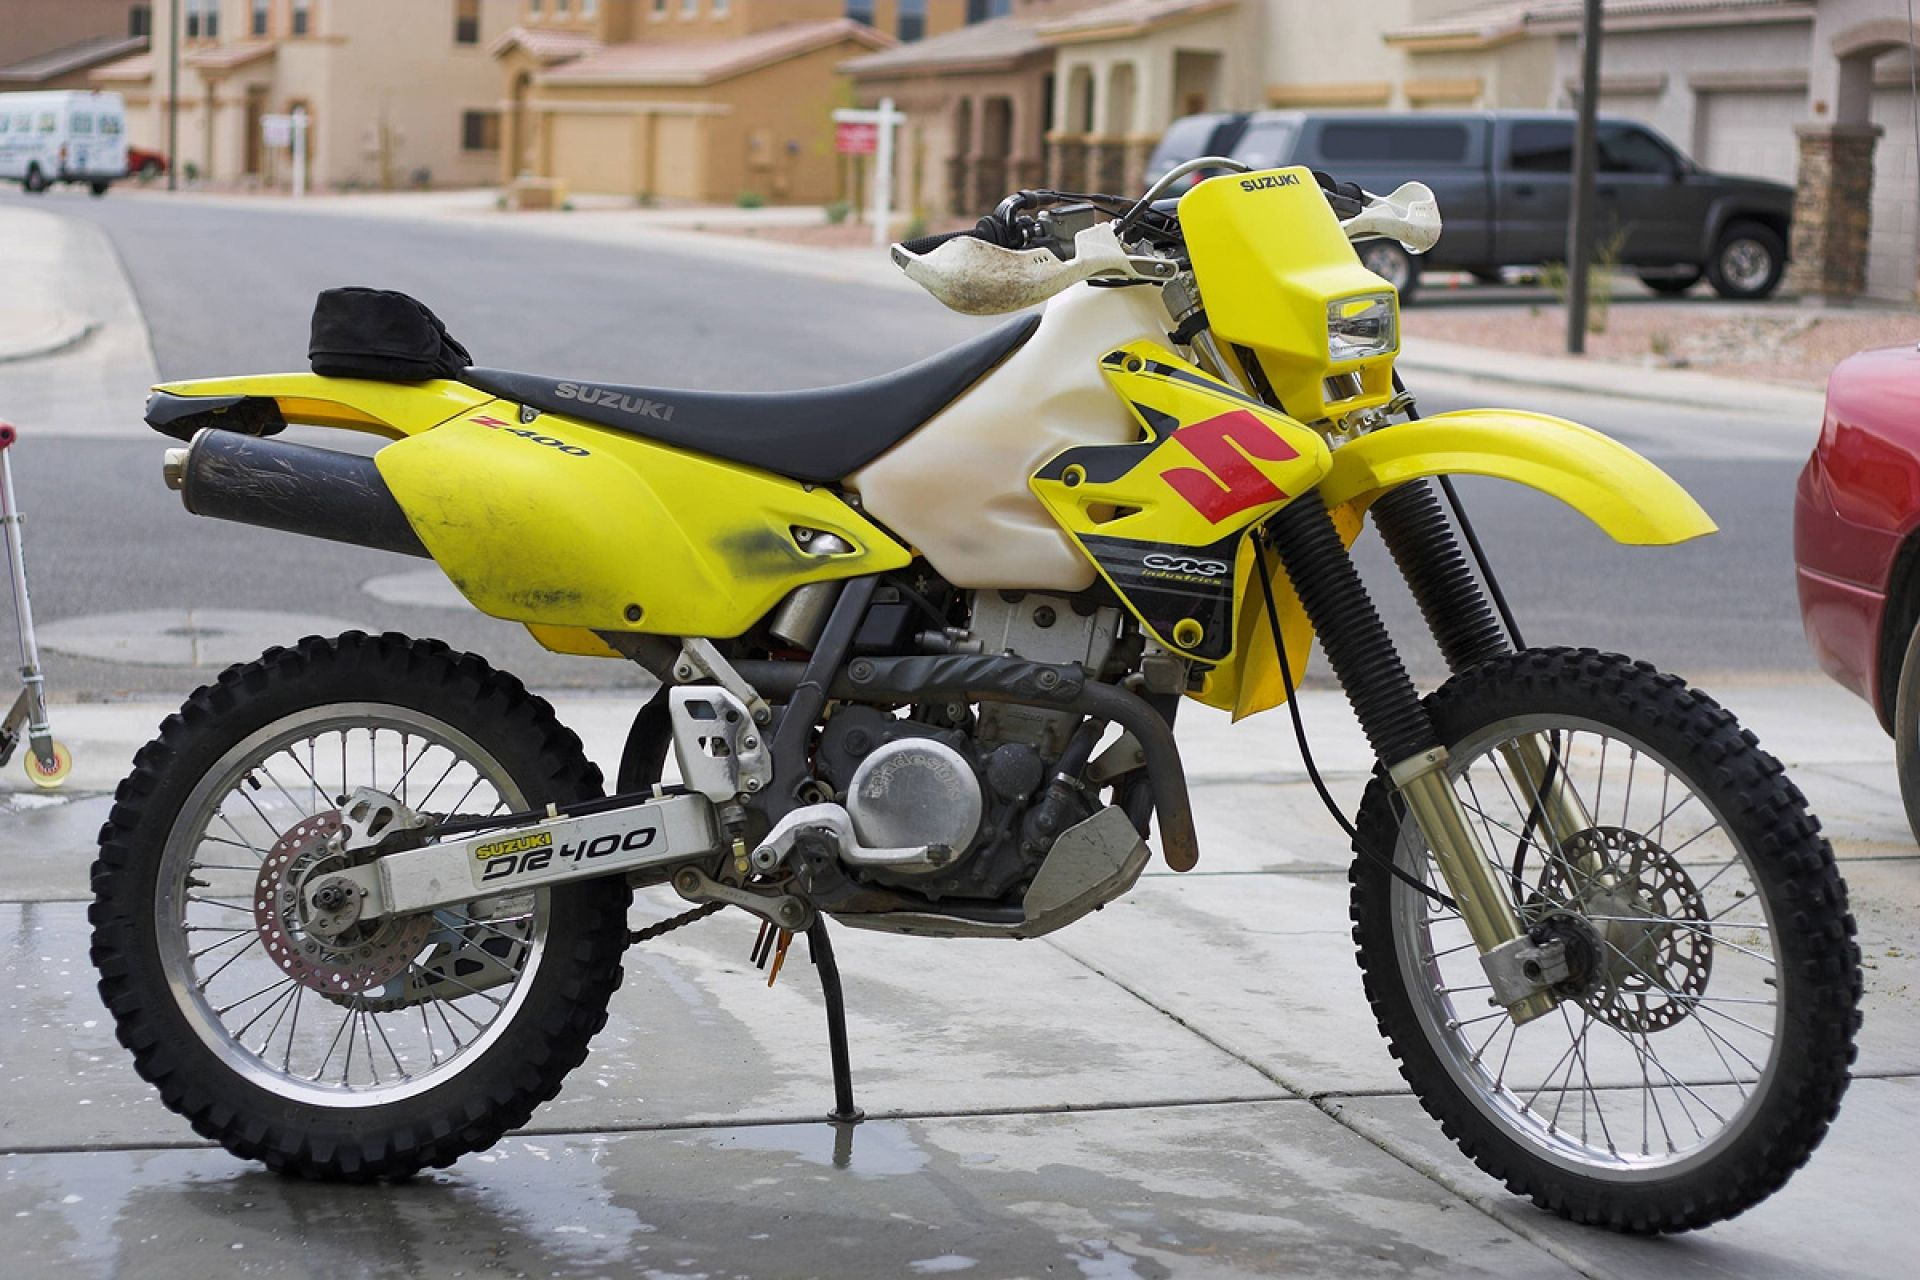 My Suzuki Drz400e Enduro Street Legal Dirt Bike Street Legal